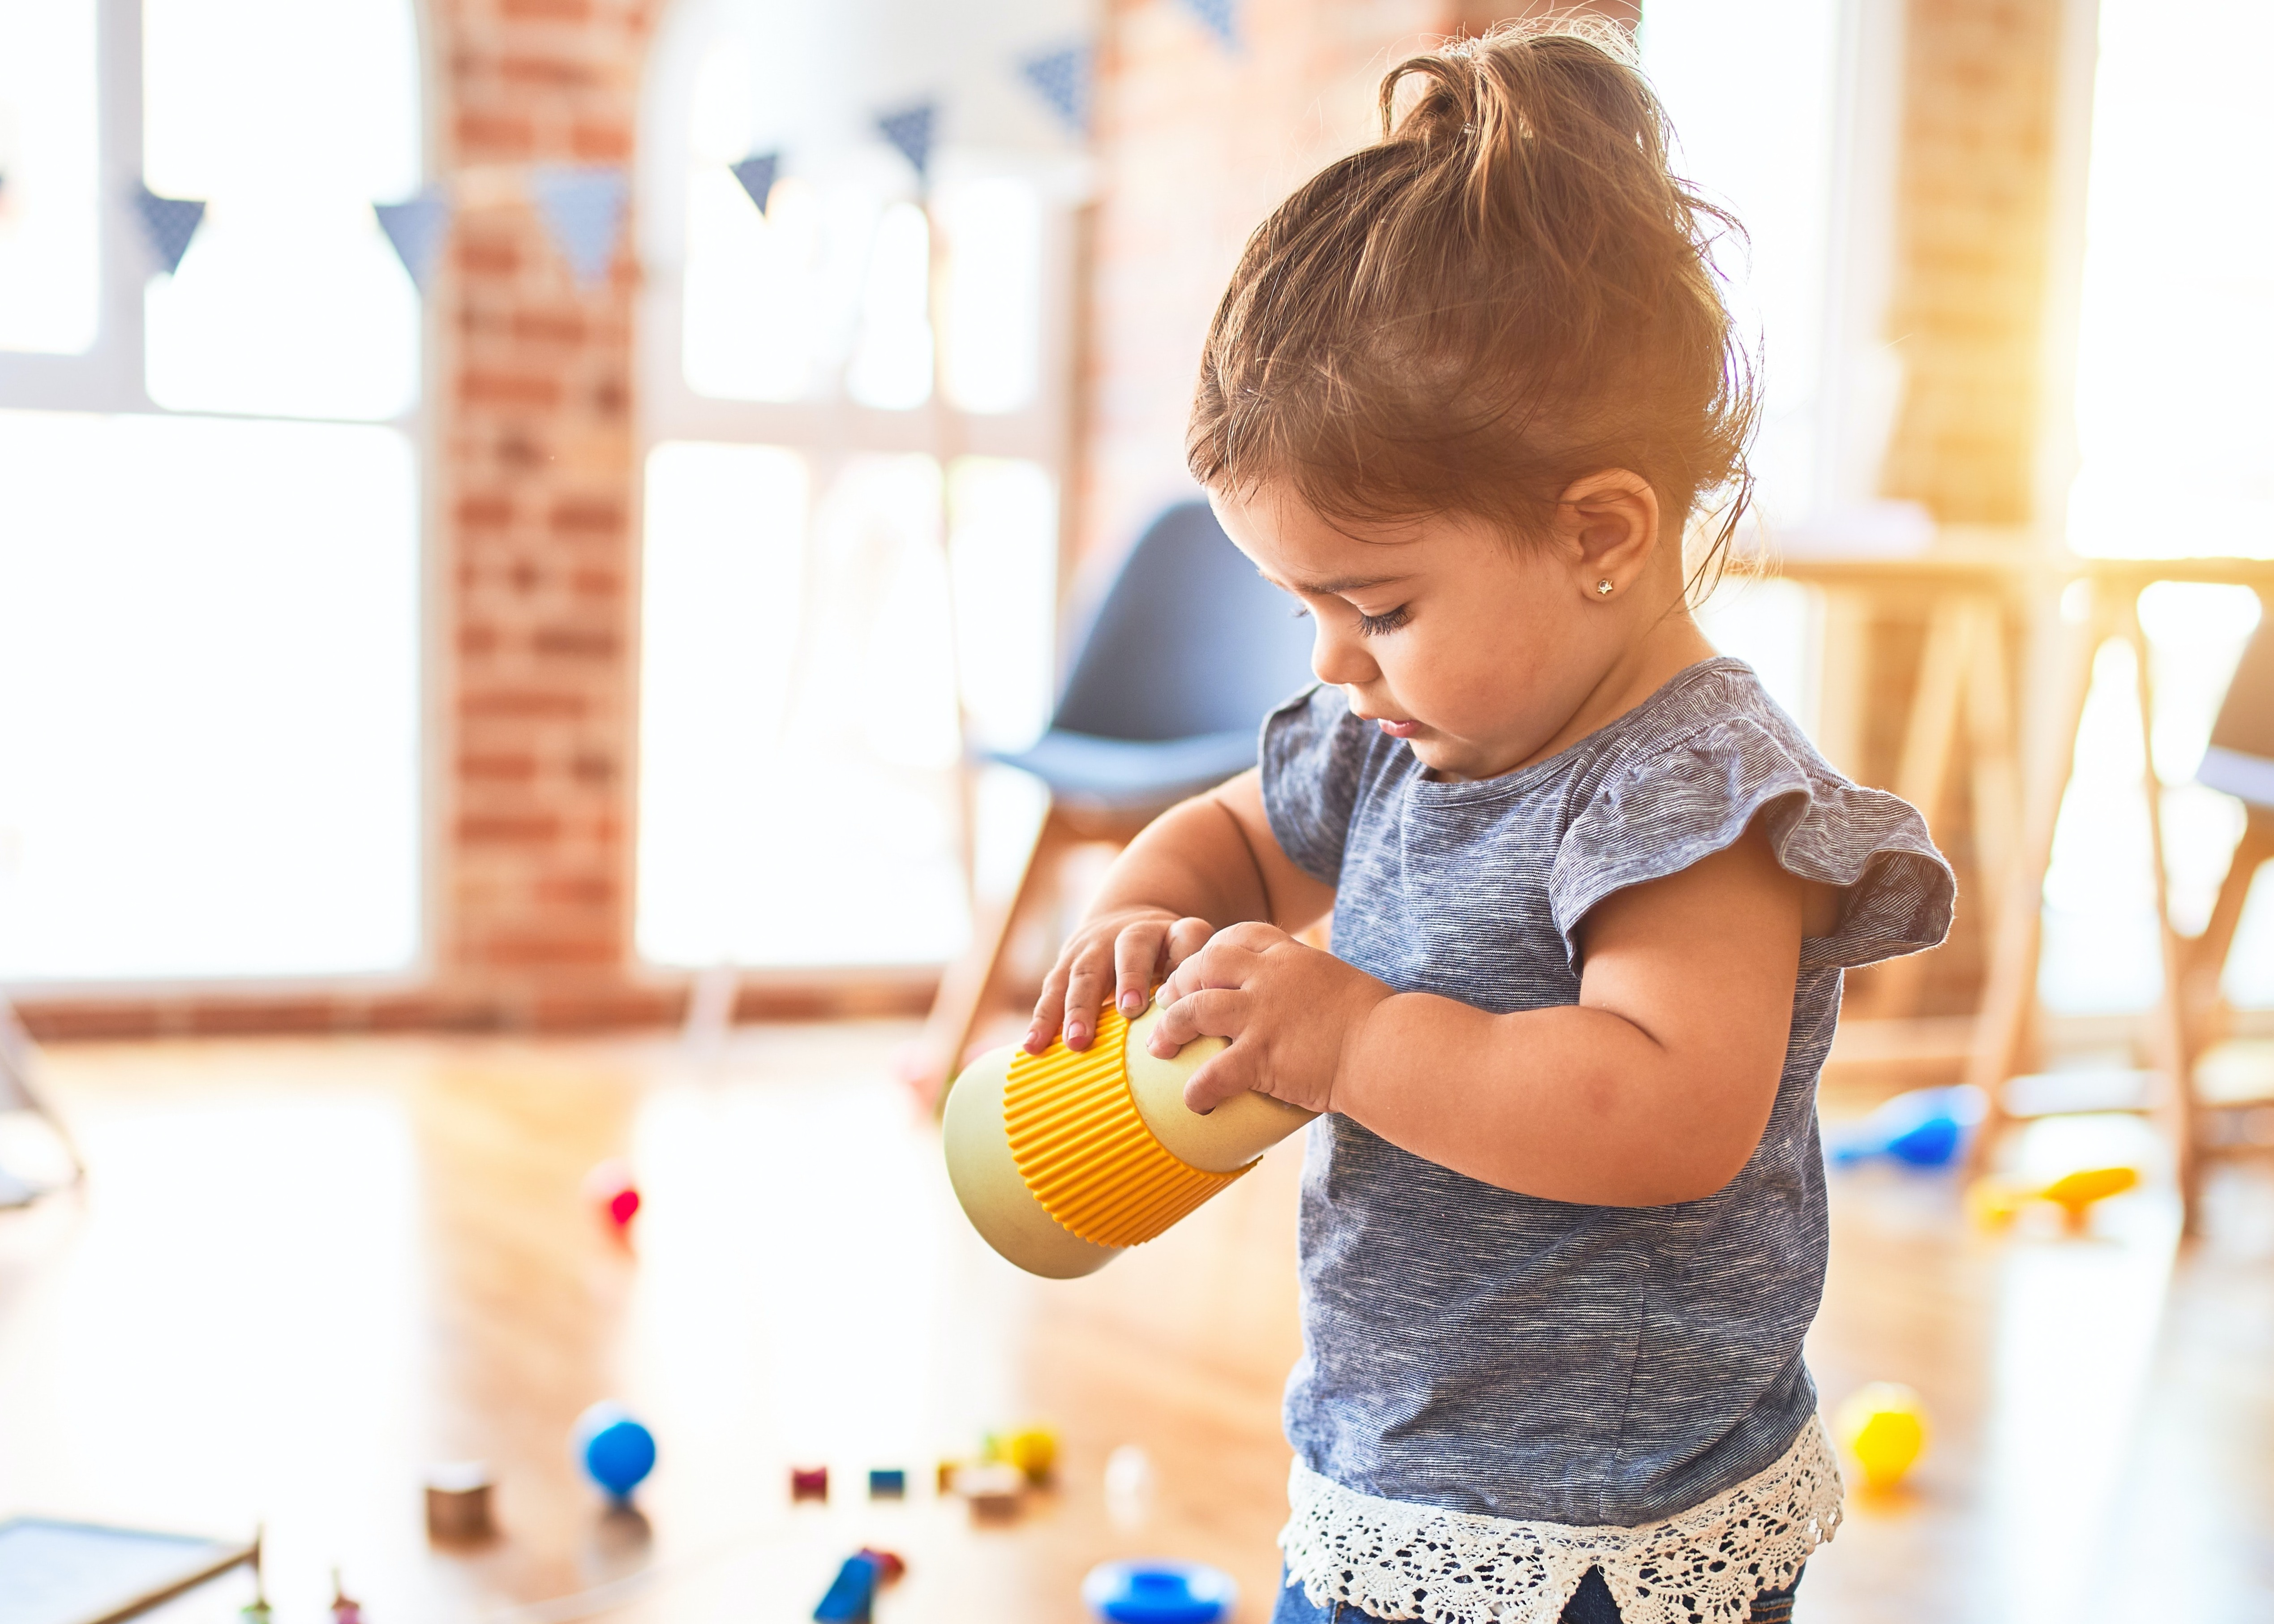 Workforce of Today, Workforce of Tomorrow: The Business Case for High-Quality Childcare